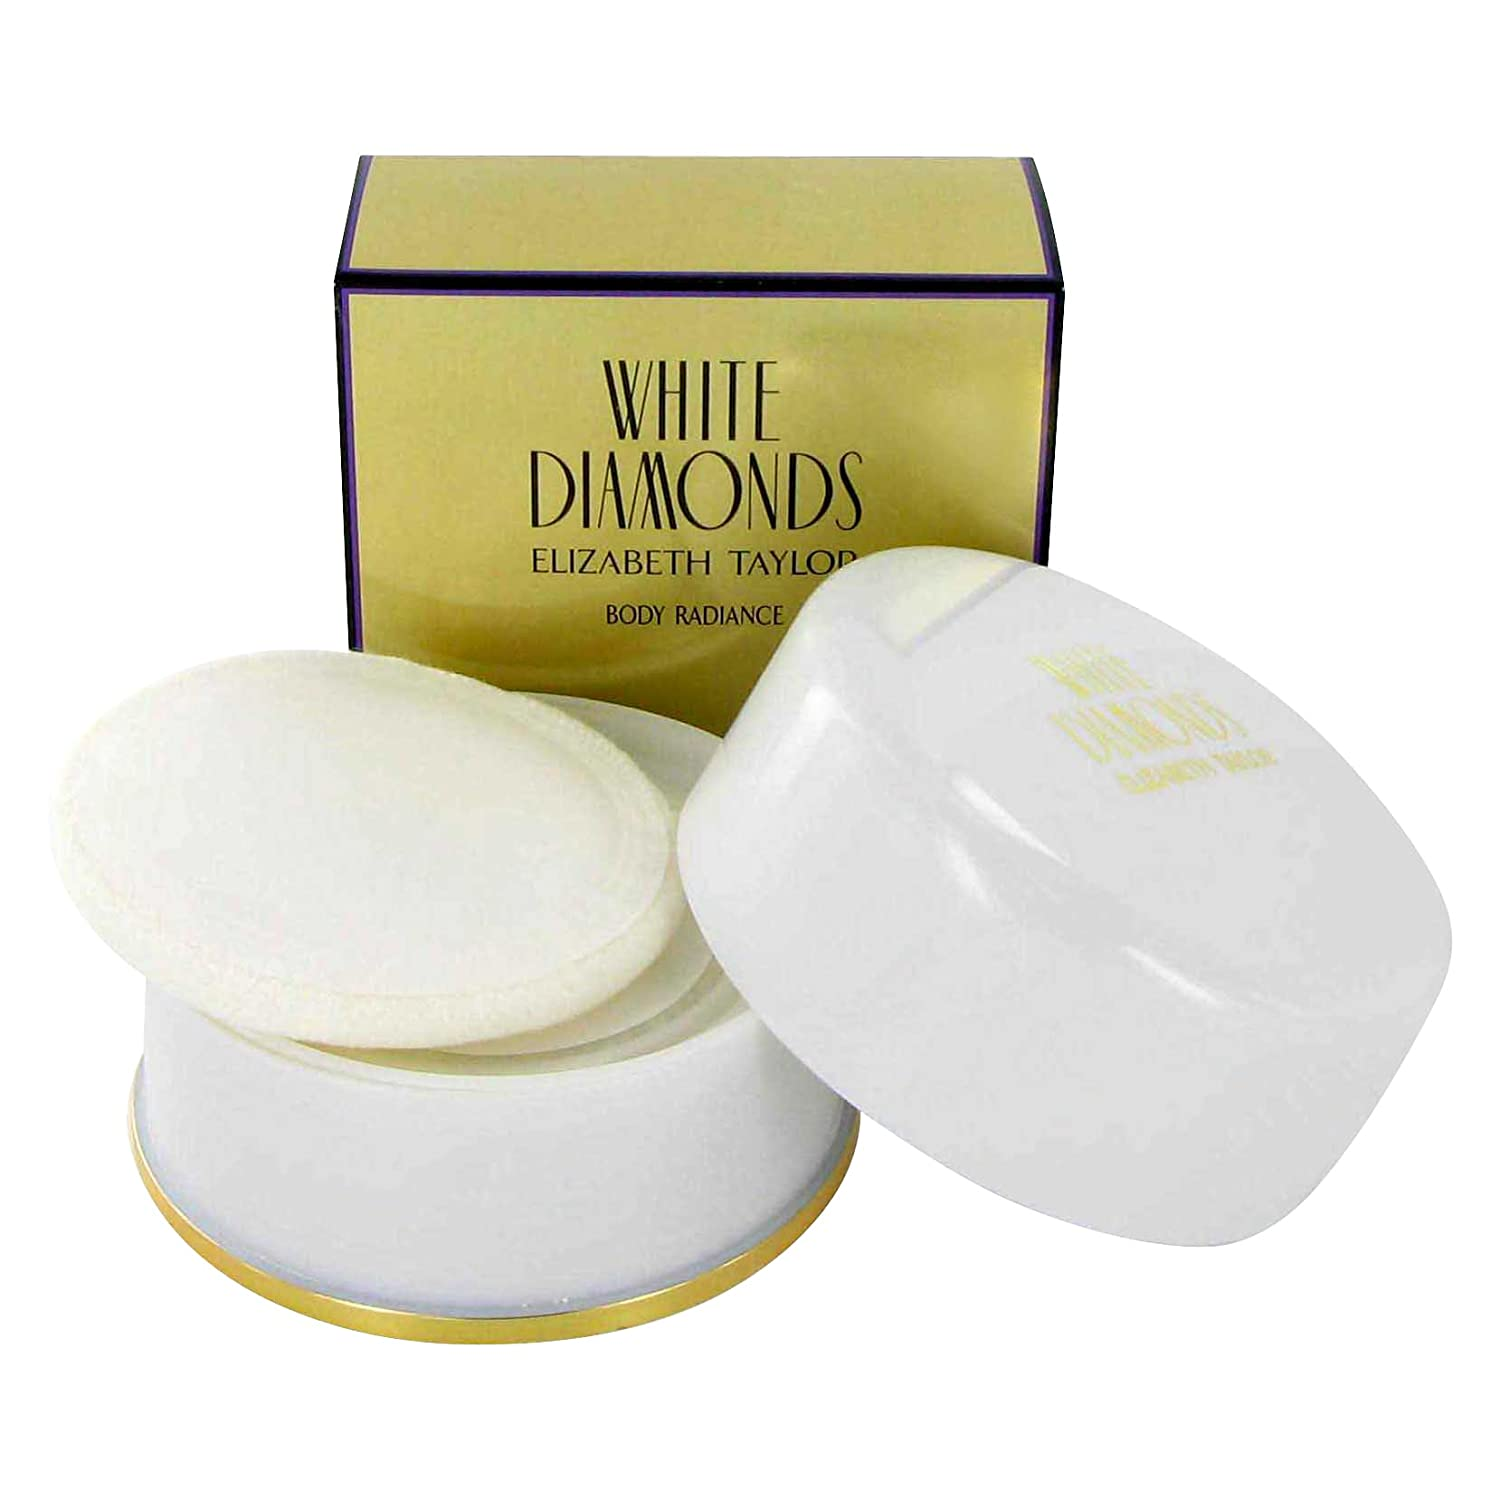 WHITE DIAMONDS by Elizabeth Taylor Dusting Powder 2.6 oz for Women 3758000